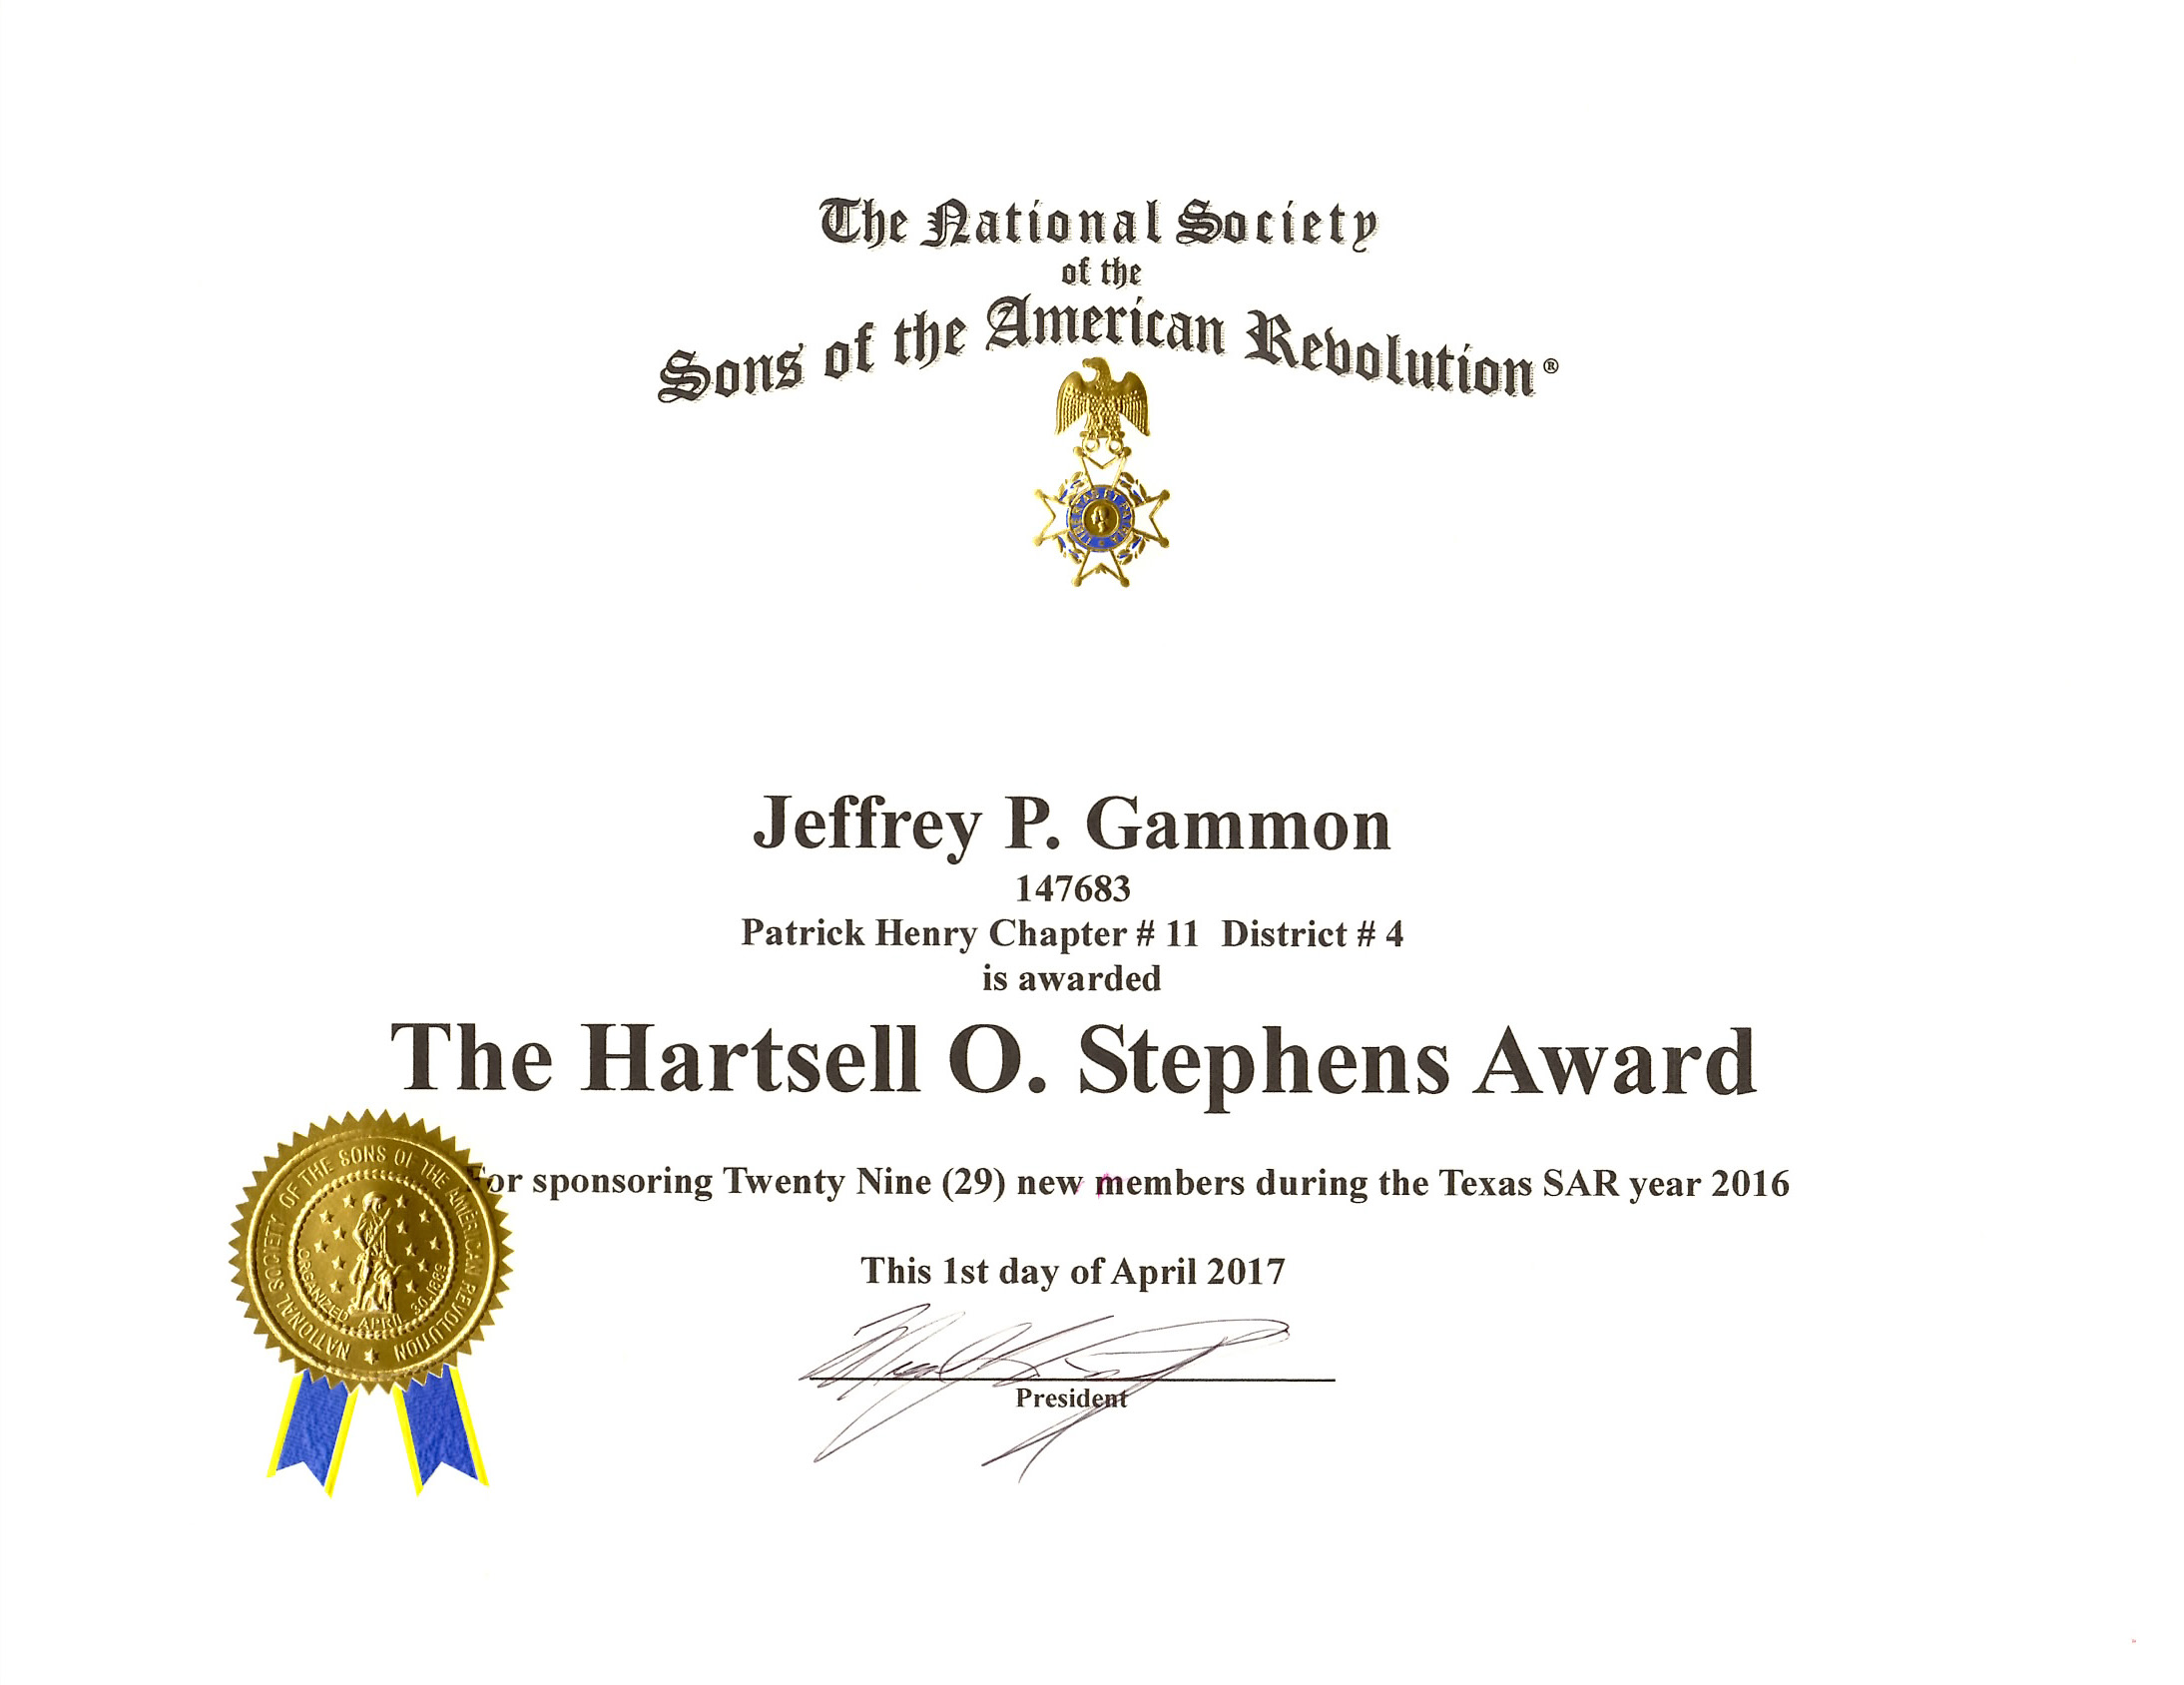 Hartsell O. Stephens Award Jeff Gammon